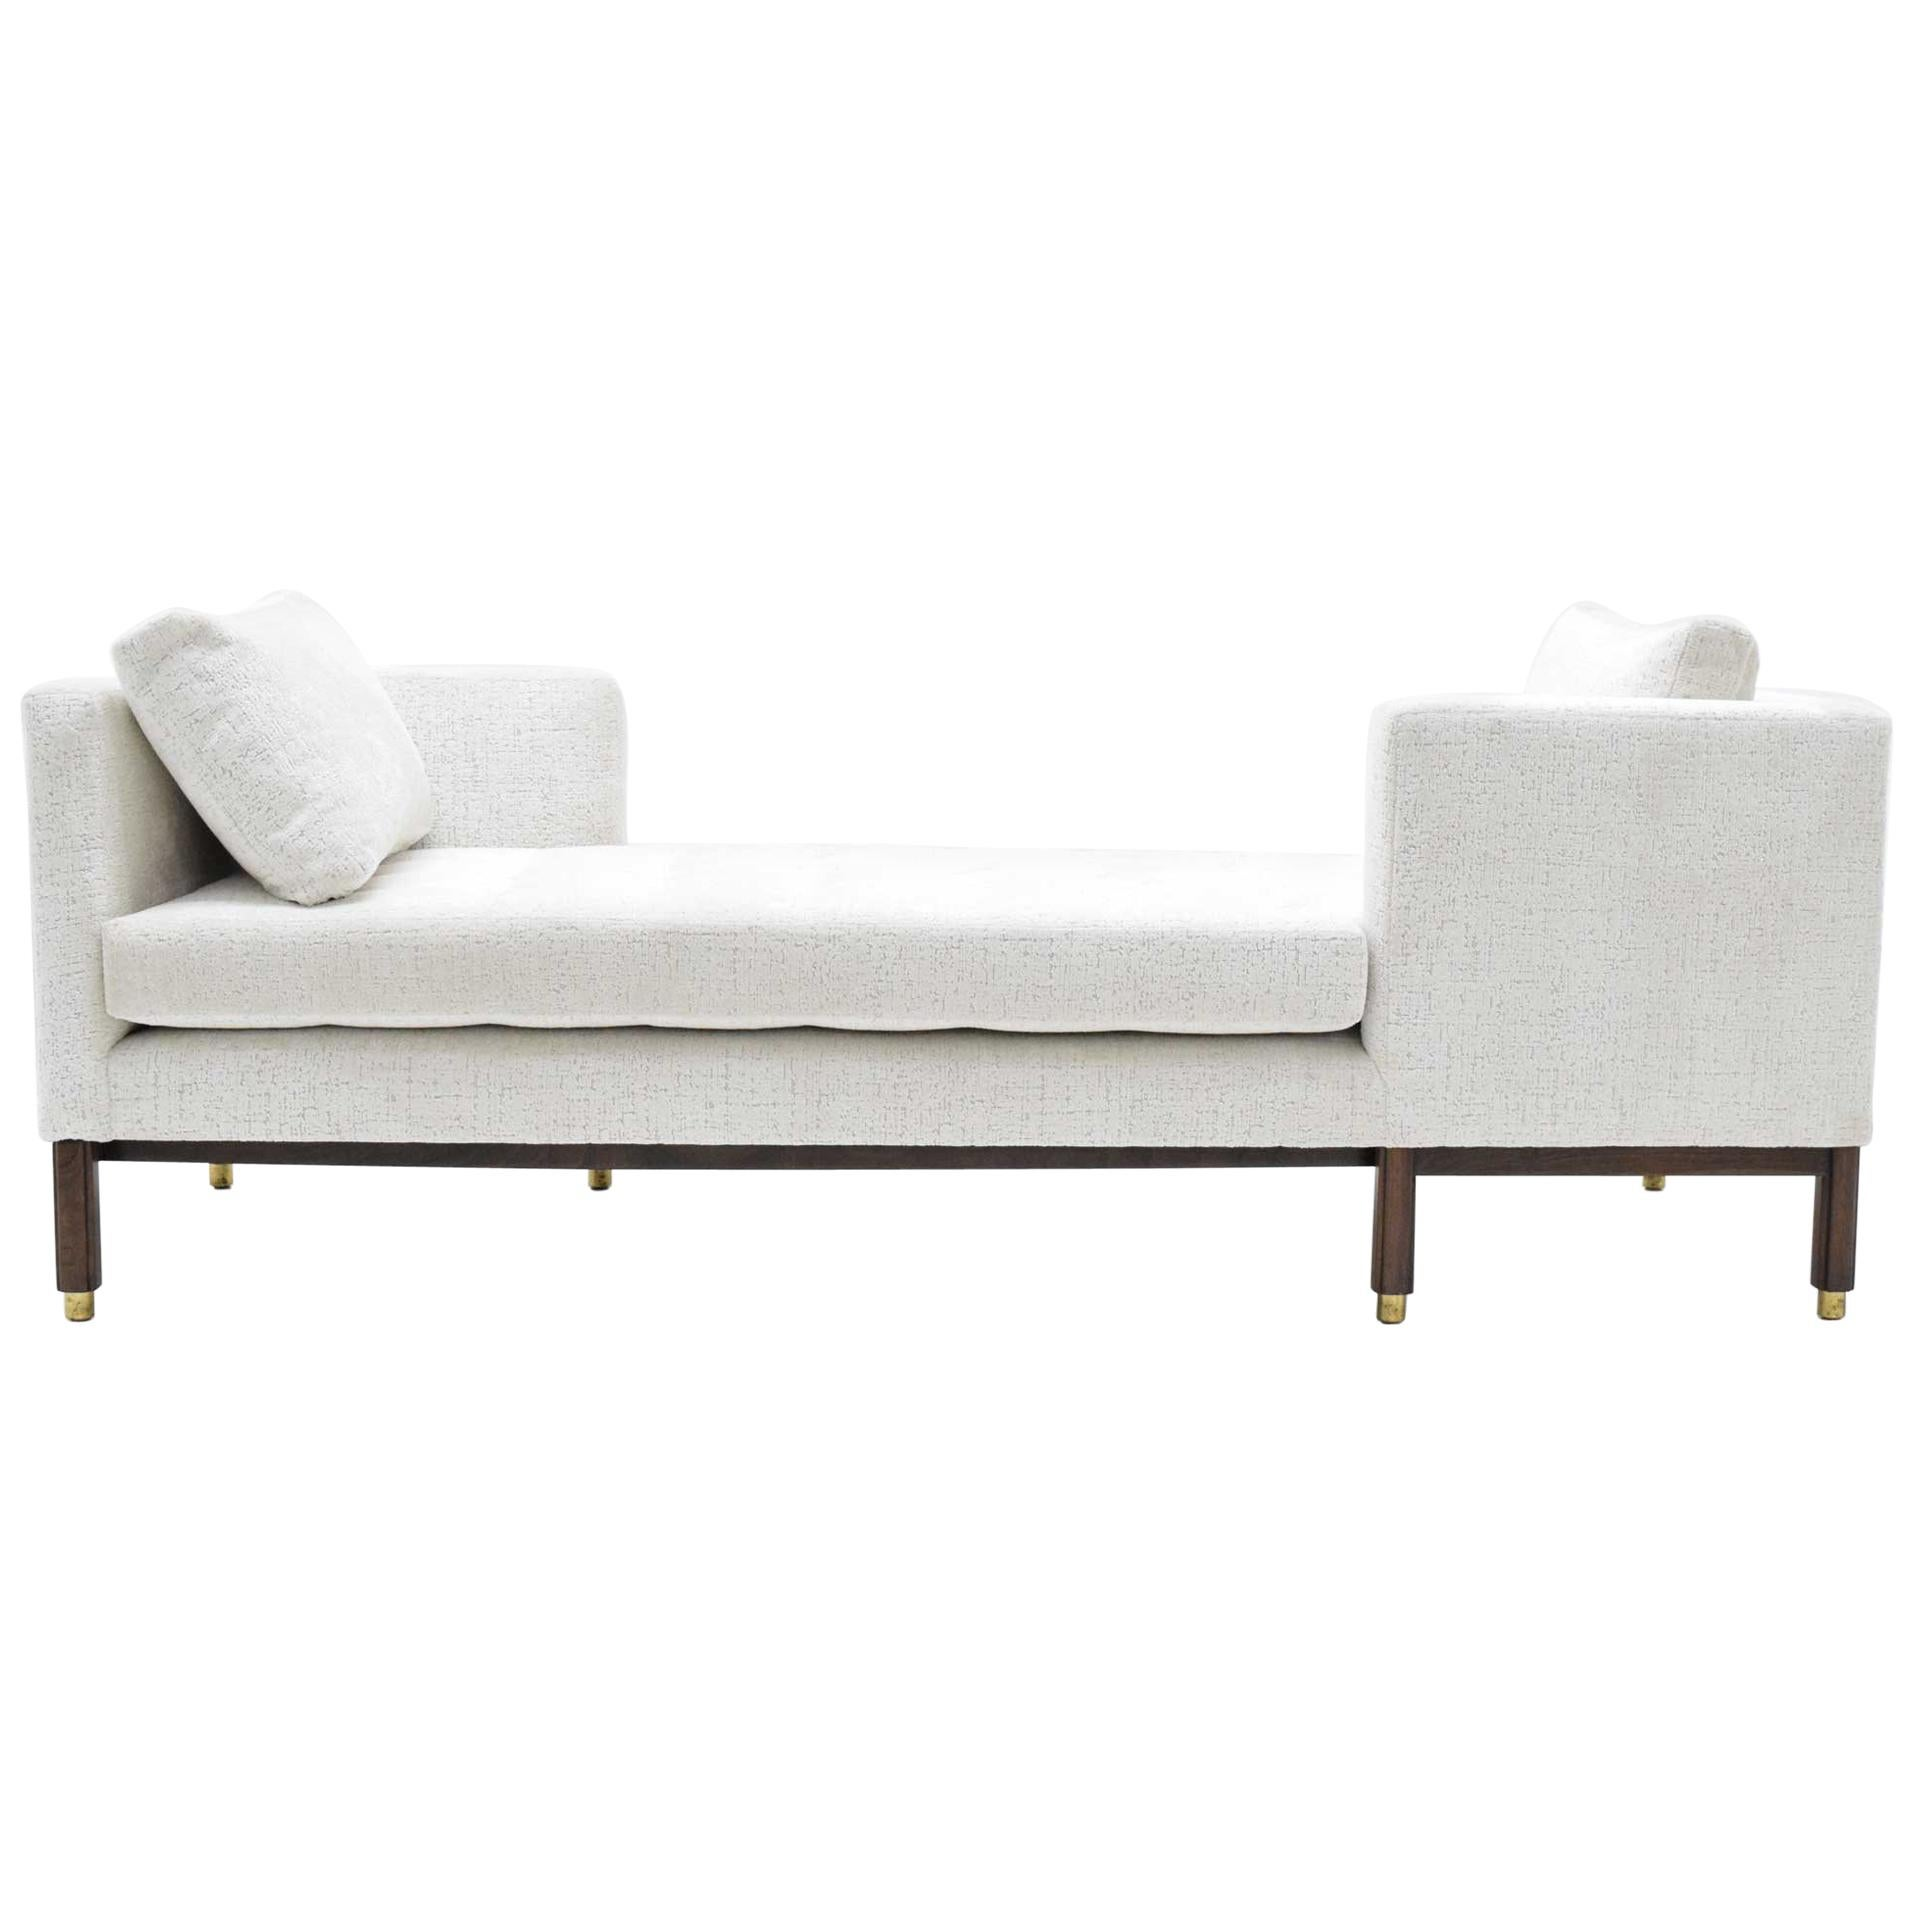 Dunbar Tête-à-Tête Sofa by Edward Wormley